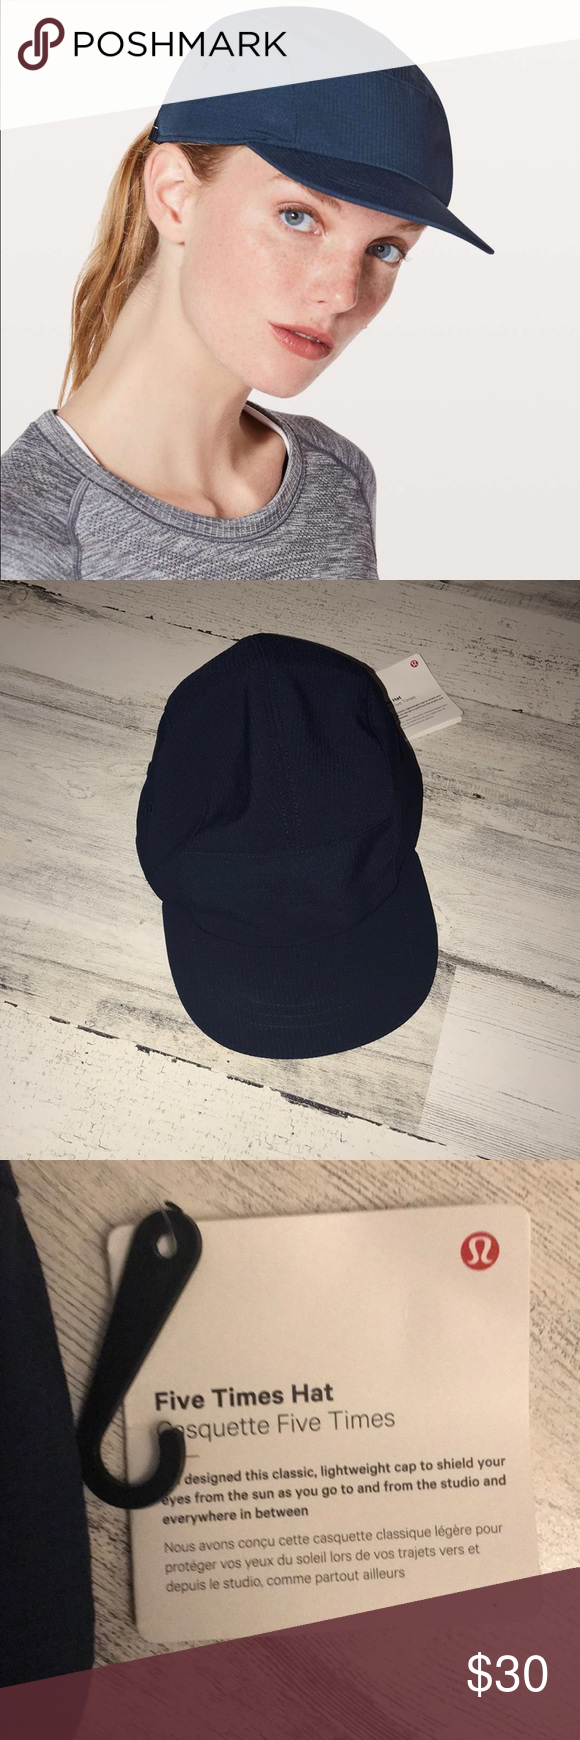 9f886e97 NWT Lululemon Five Times Hat Brand new with tag Lululemon Five Times Hat.  The color code is TRNV. Size O/S lululemon athletica Accessories Hats